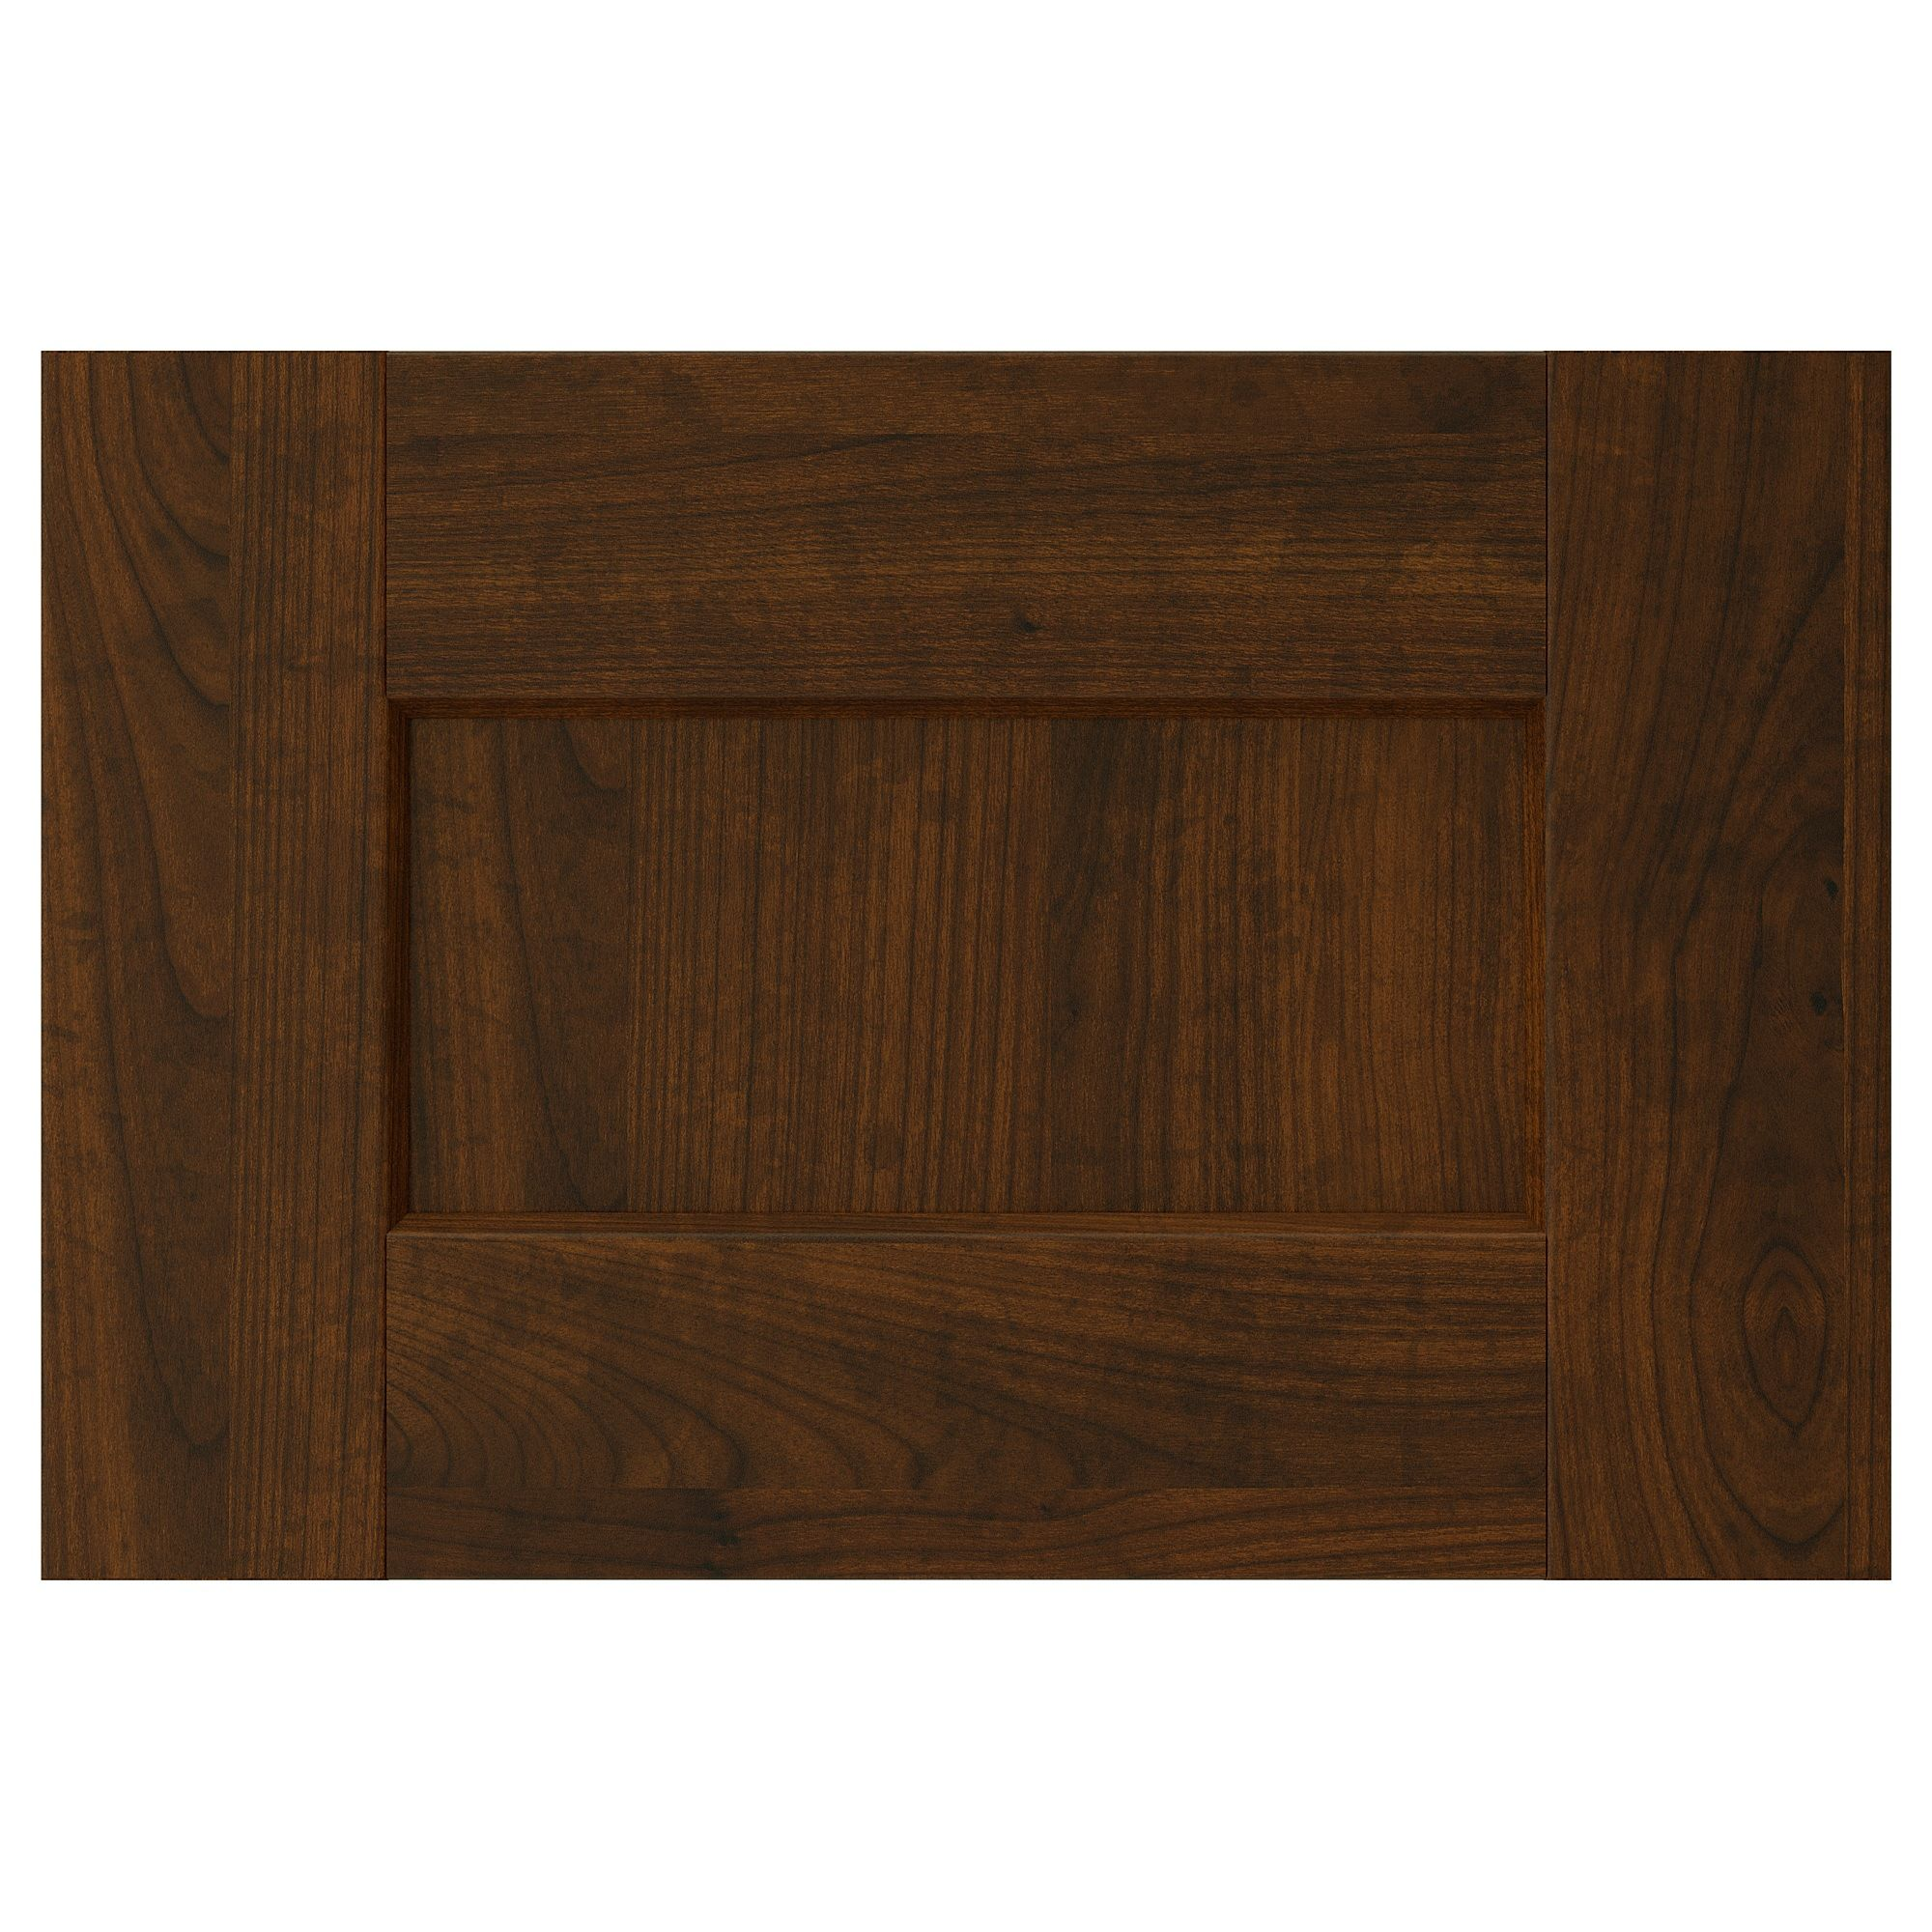 Ikea Edserum Drawer Front Wood Effect Brown Drawer Fronts